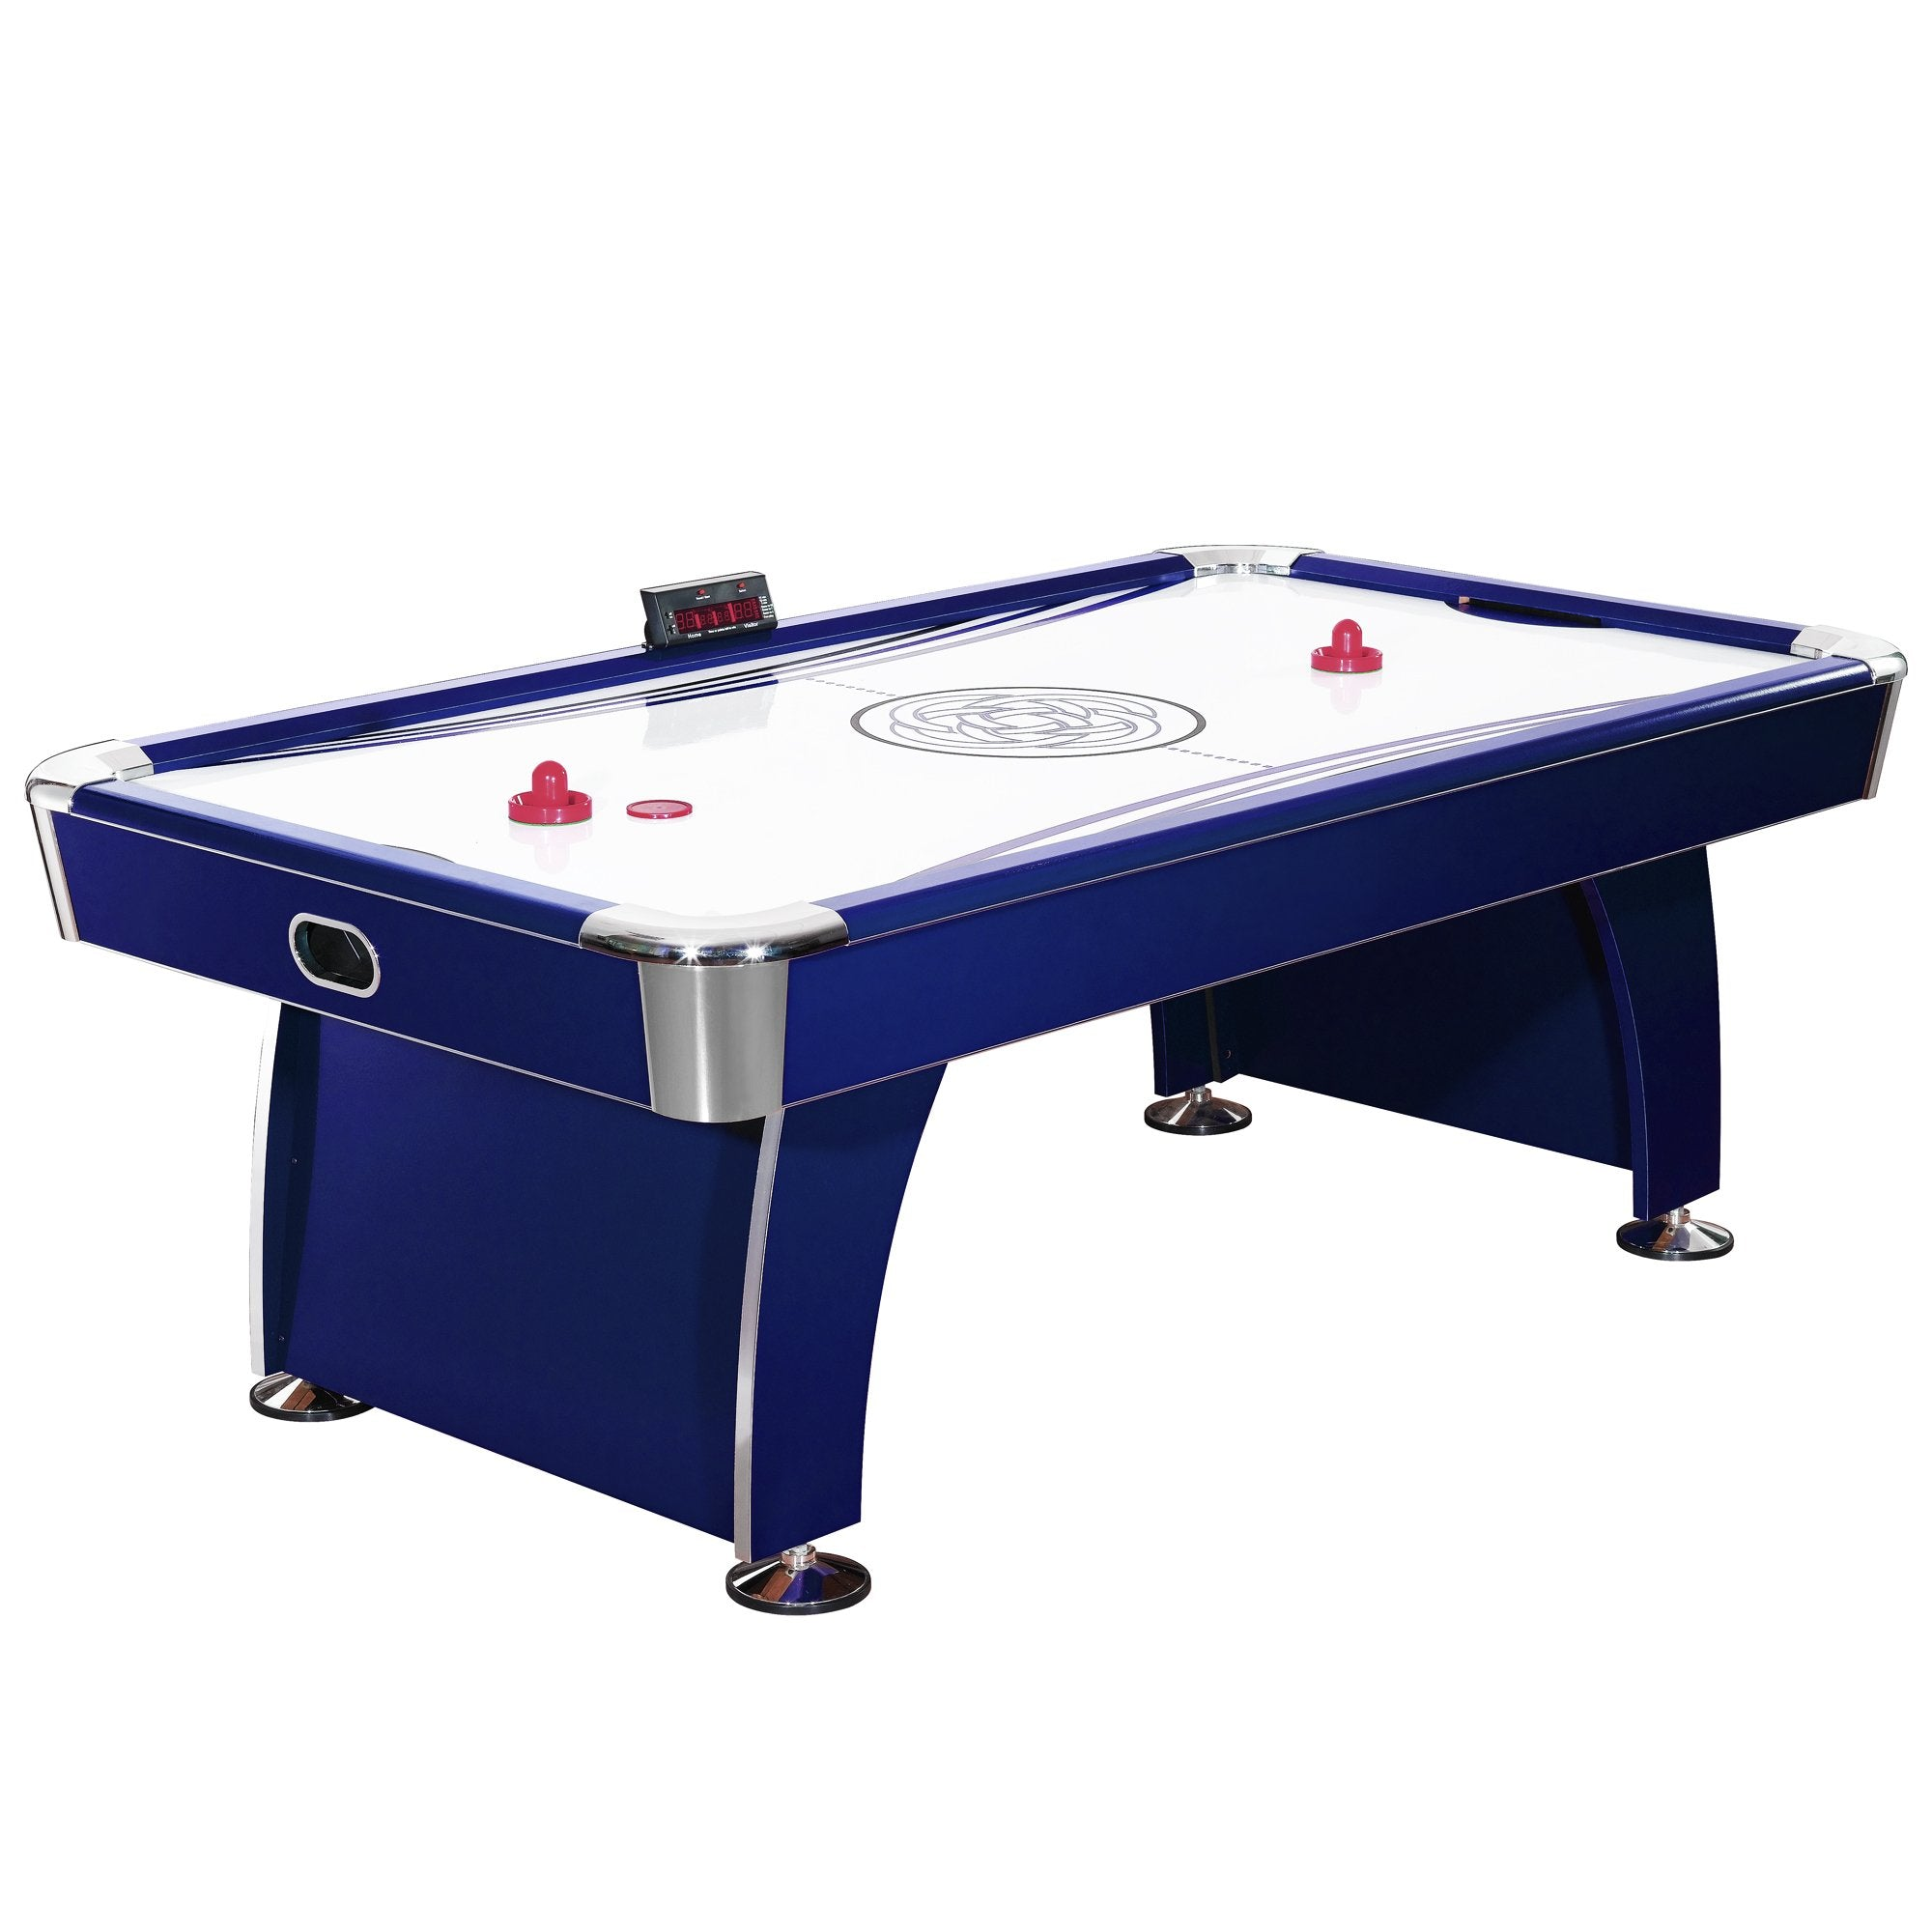 Hathaway Phantom 7.5ft Air Hockey Table - Gaming Blaze